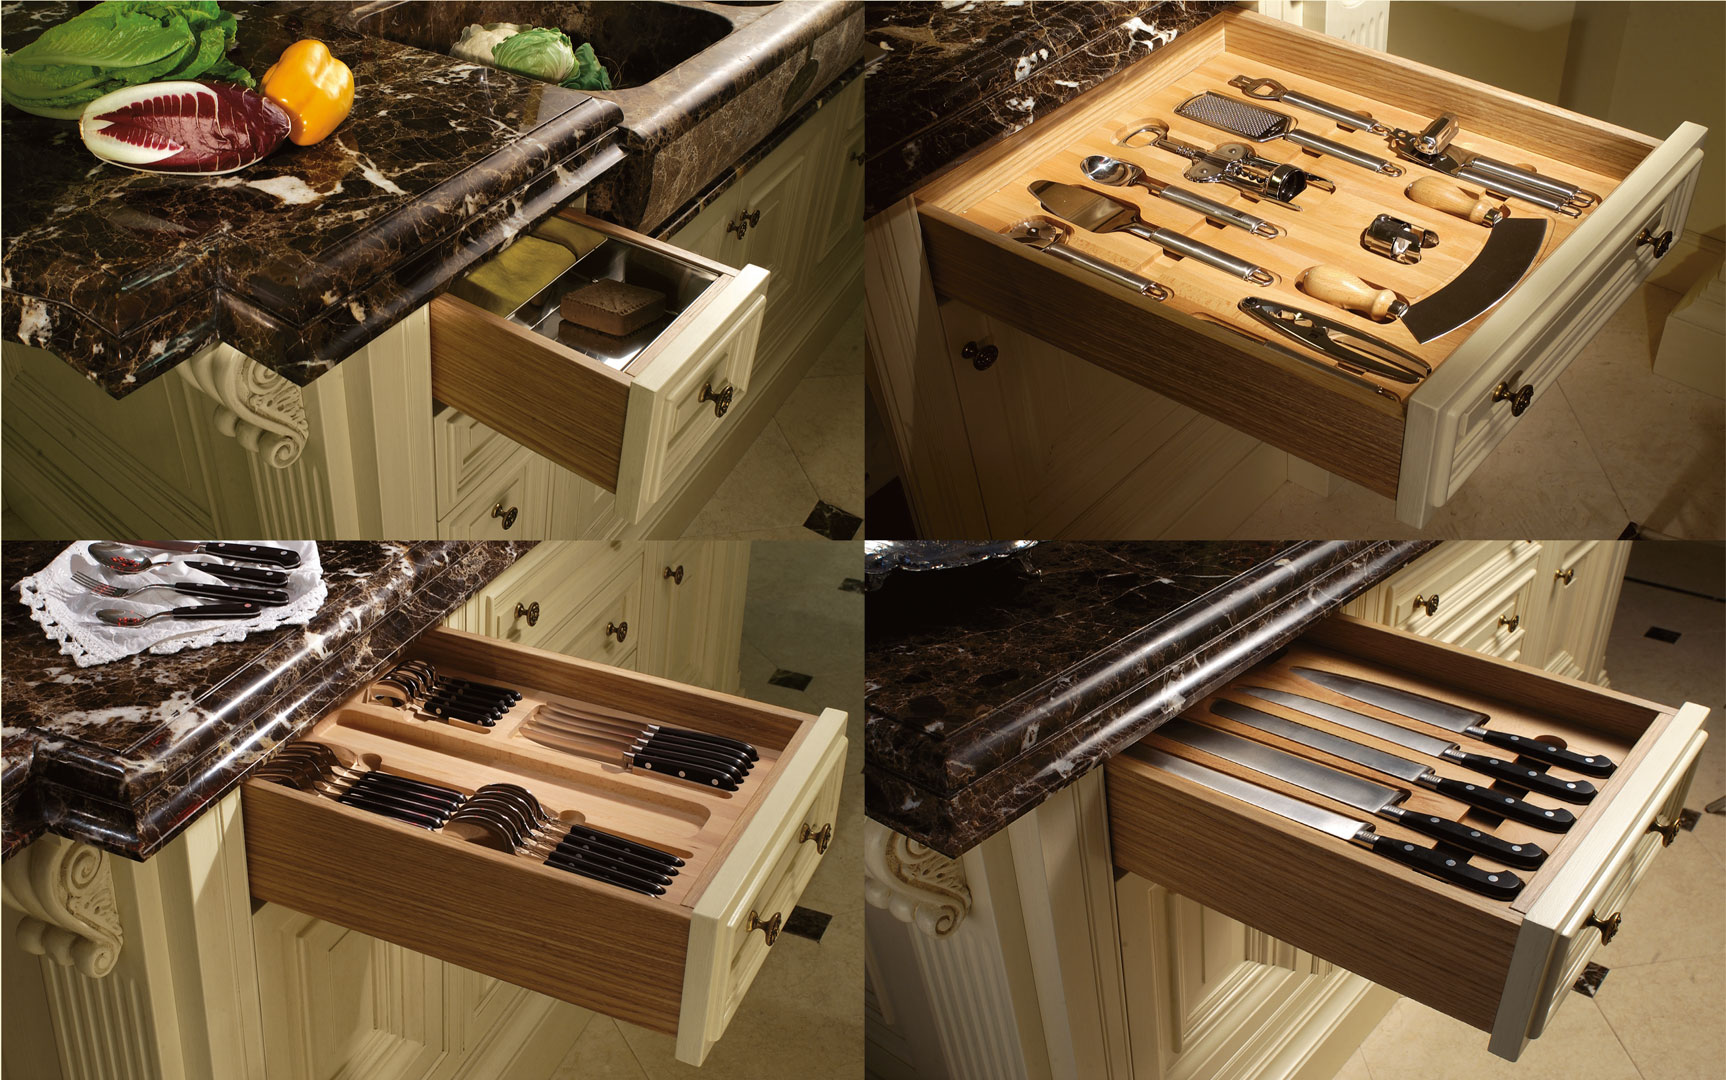 The kitchen island contains drawers fitted with internal dividers for all your kitchen utensils